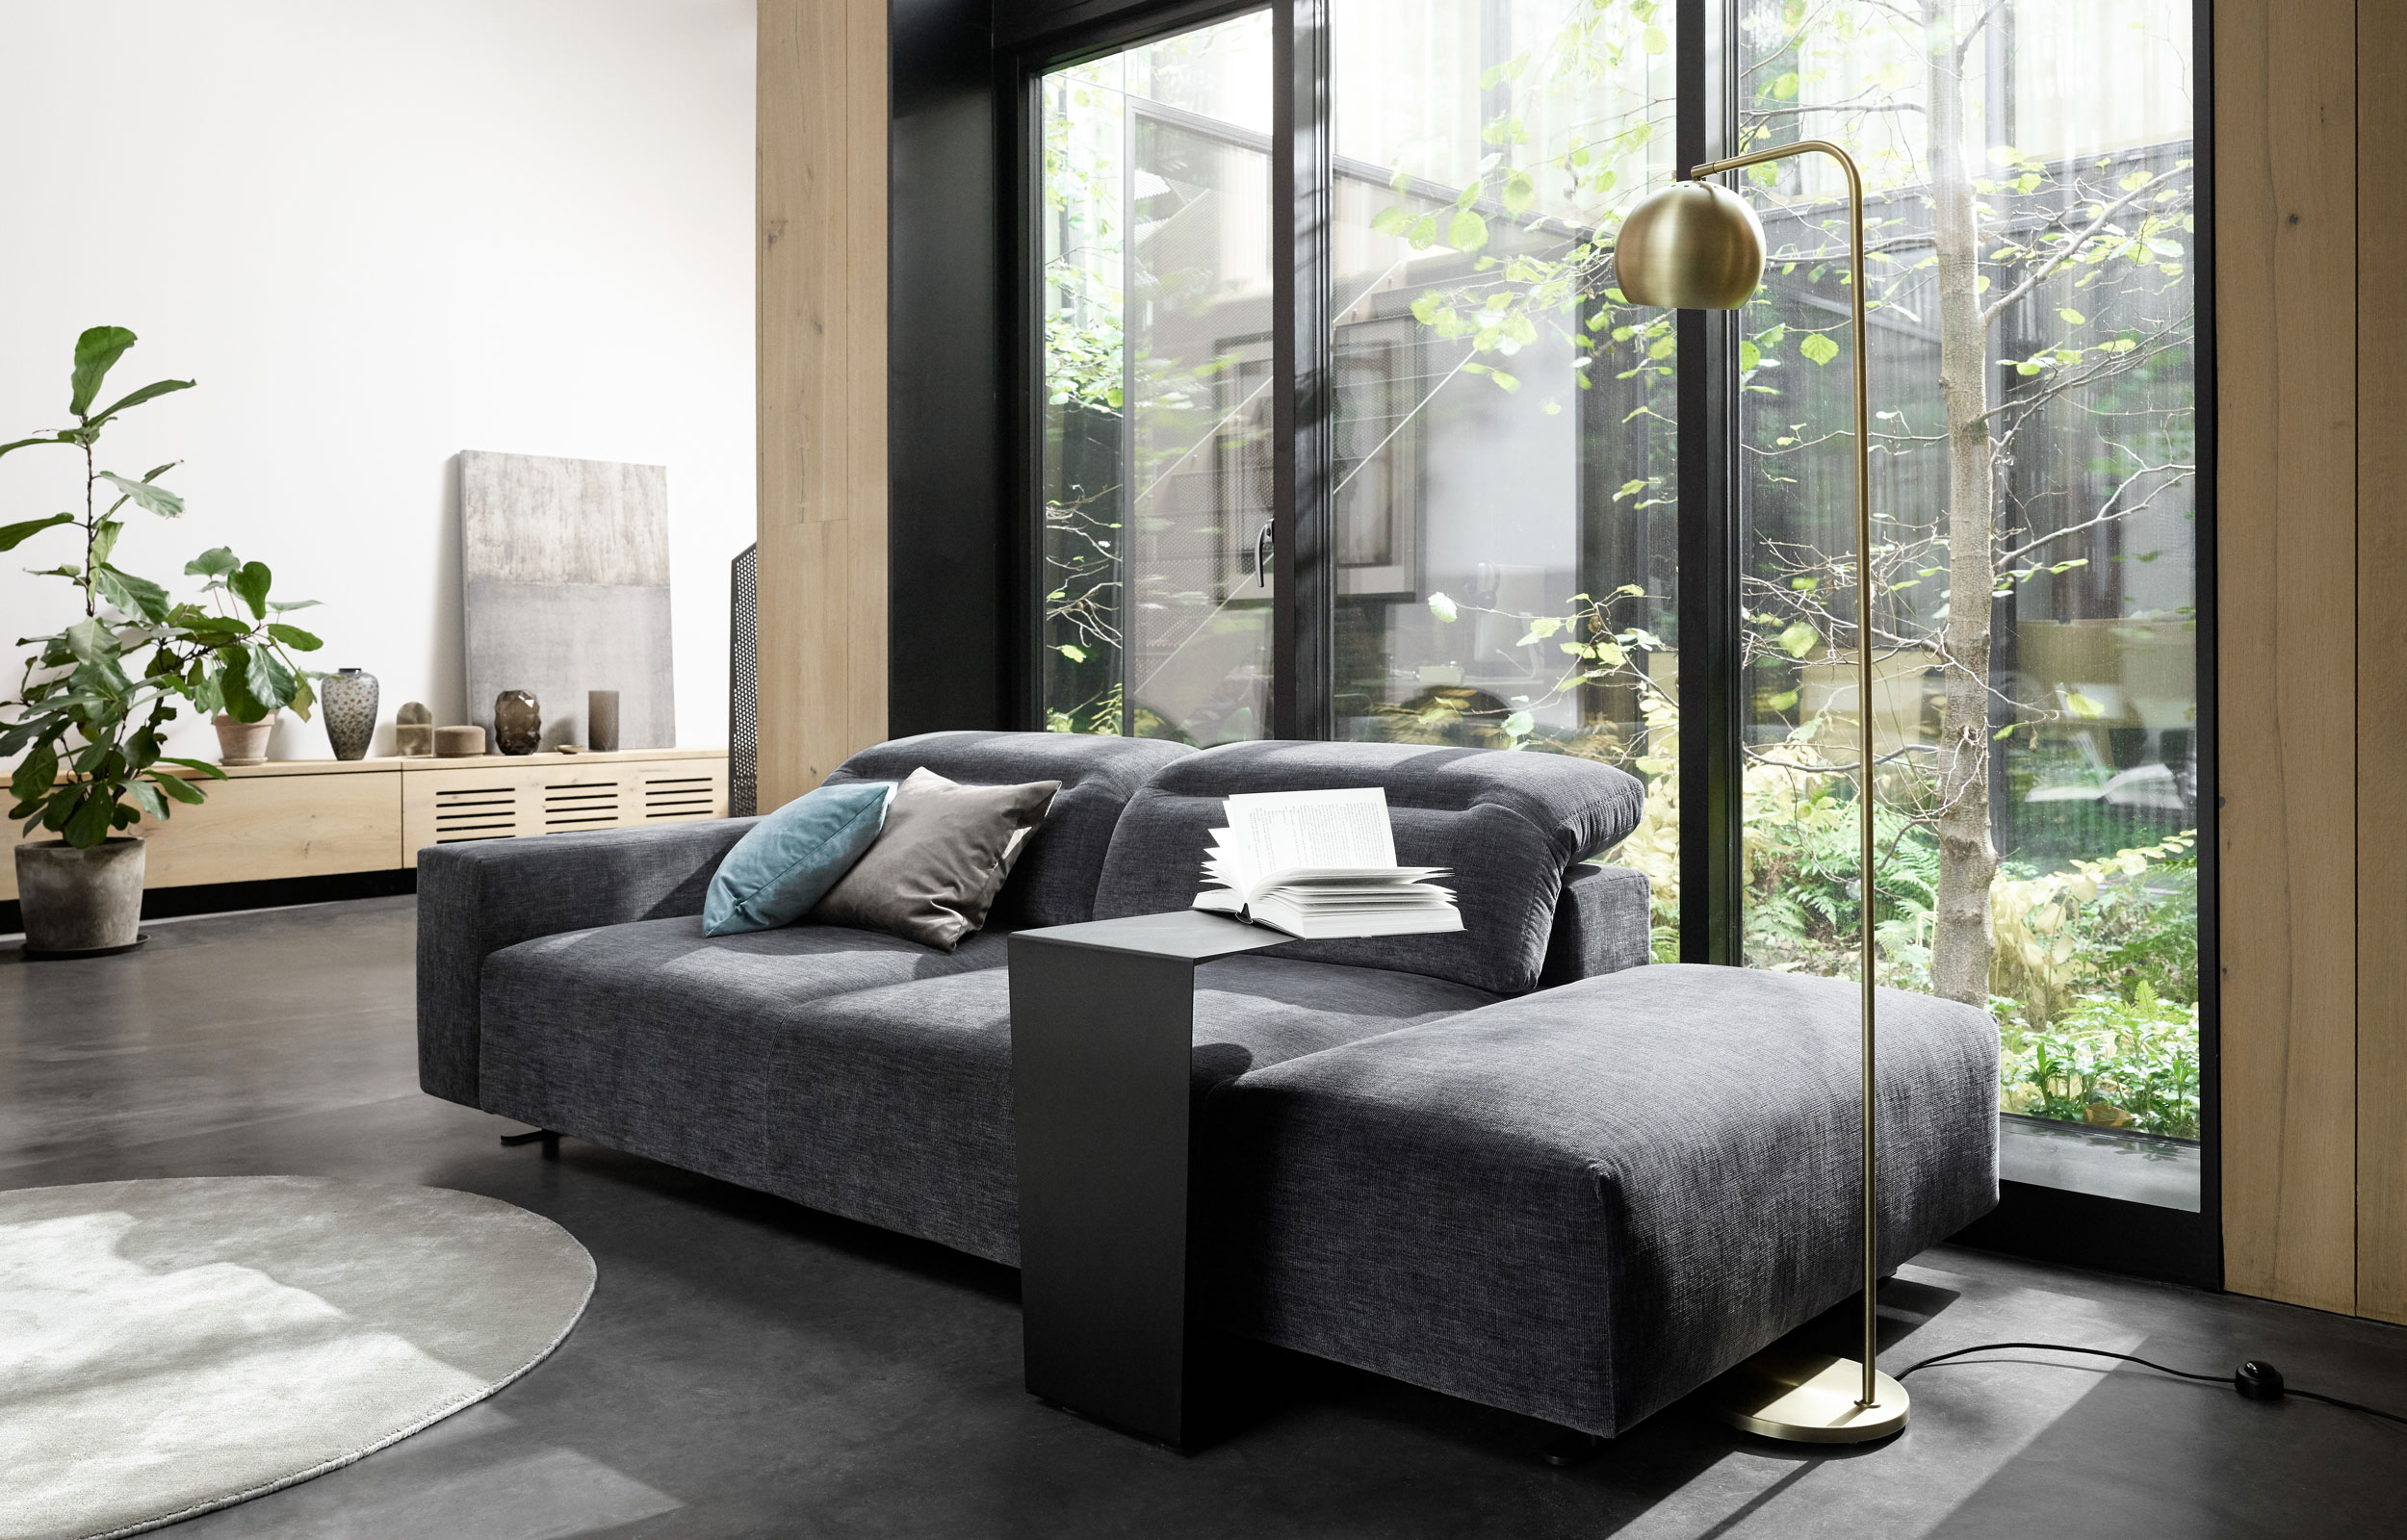 Sofa styling by BoConcept